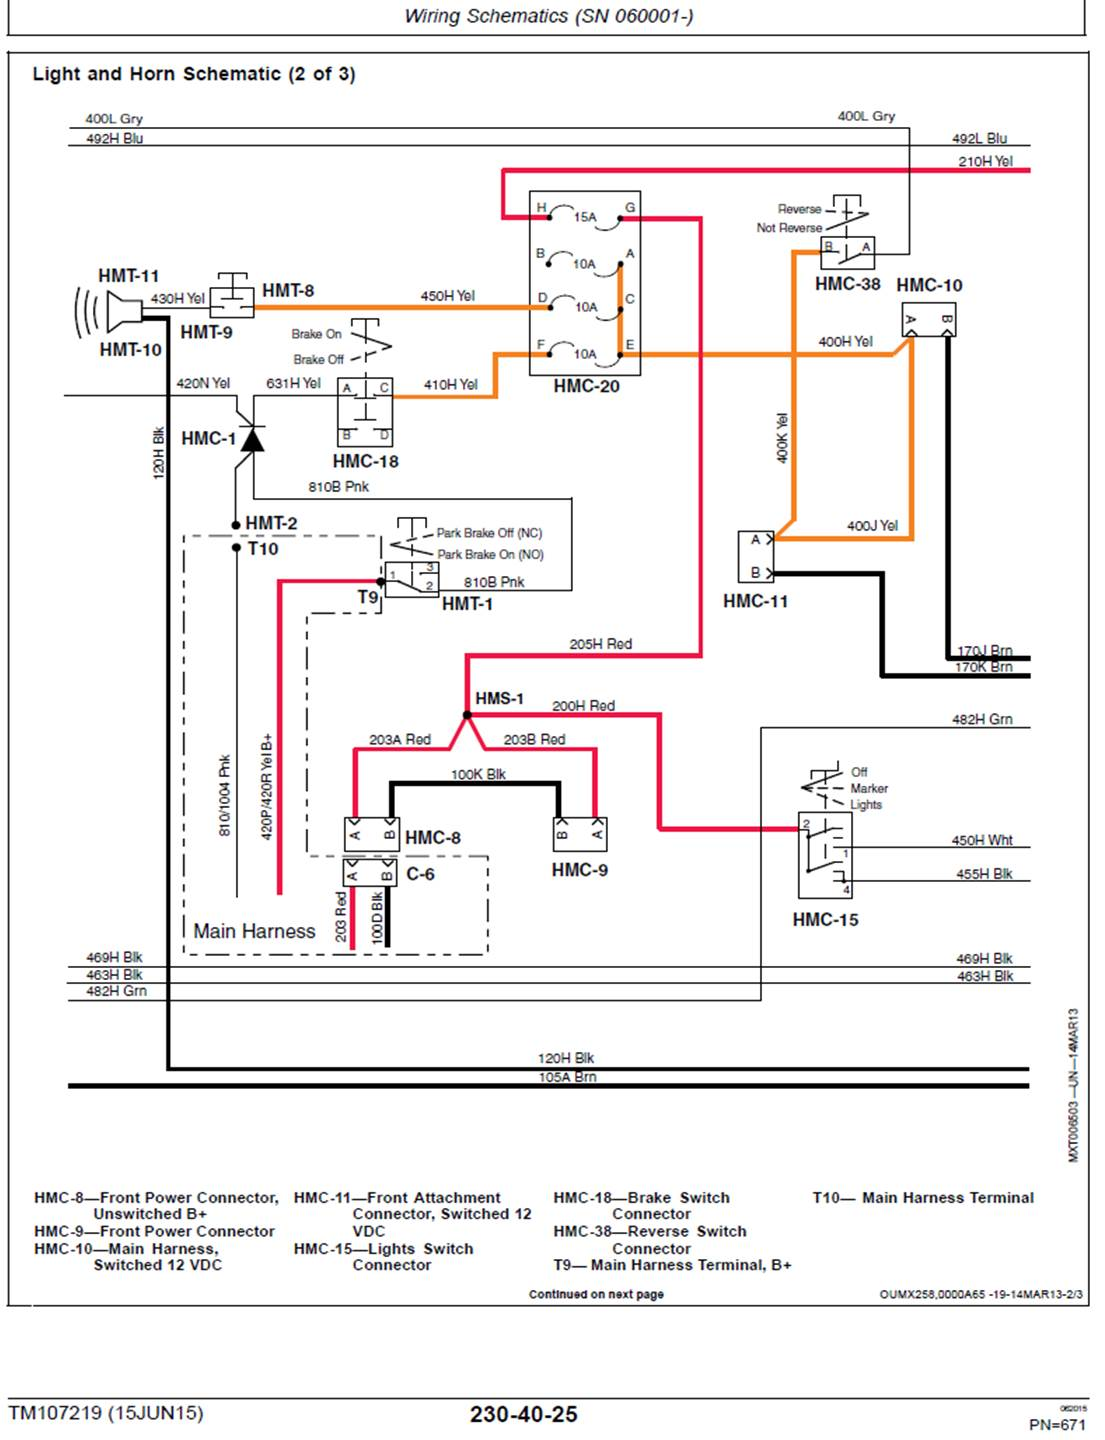 john deere 4x2 gator wiring diagram wiring diagram third level4x2 gator wire diagram wiring diagrams schema john deere gator 4x2 ignition wiring diagram for gator